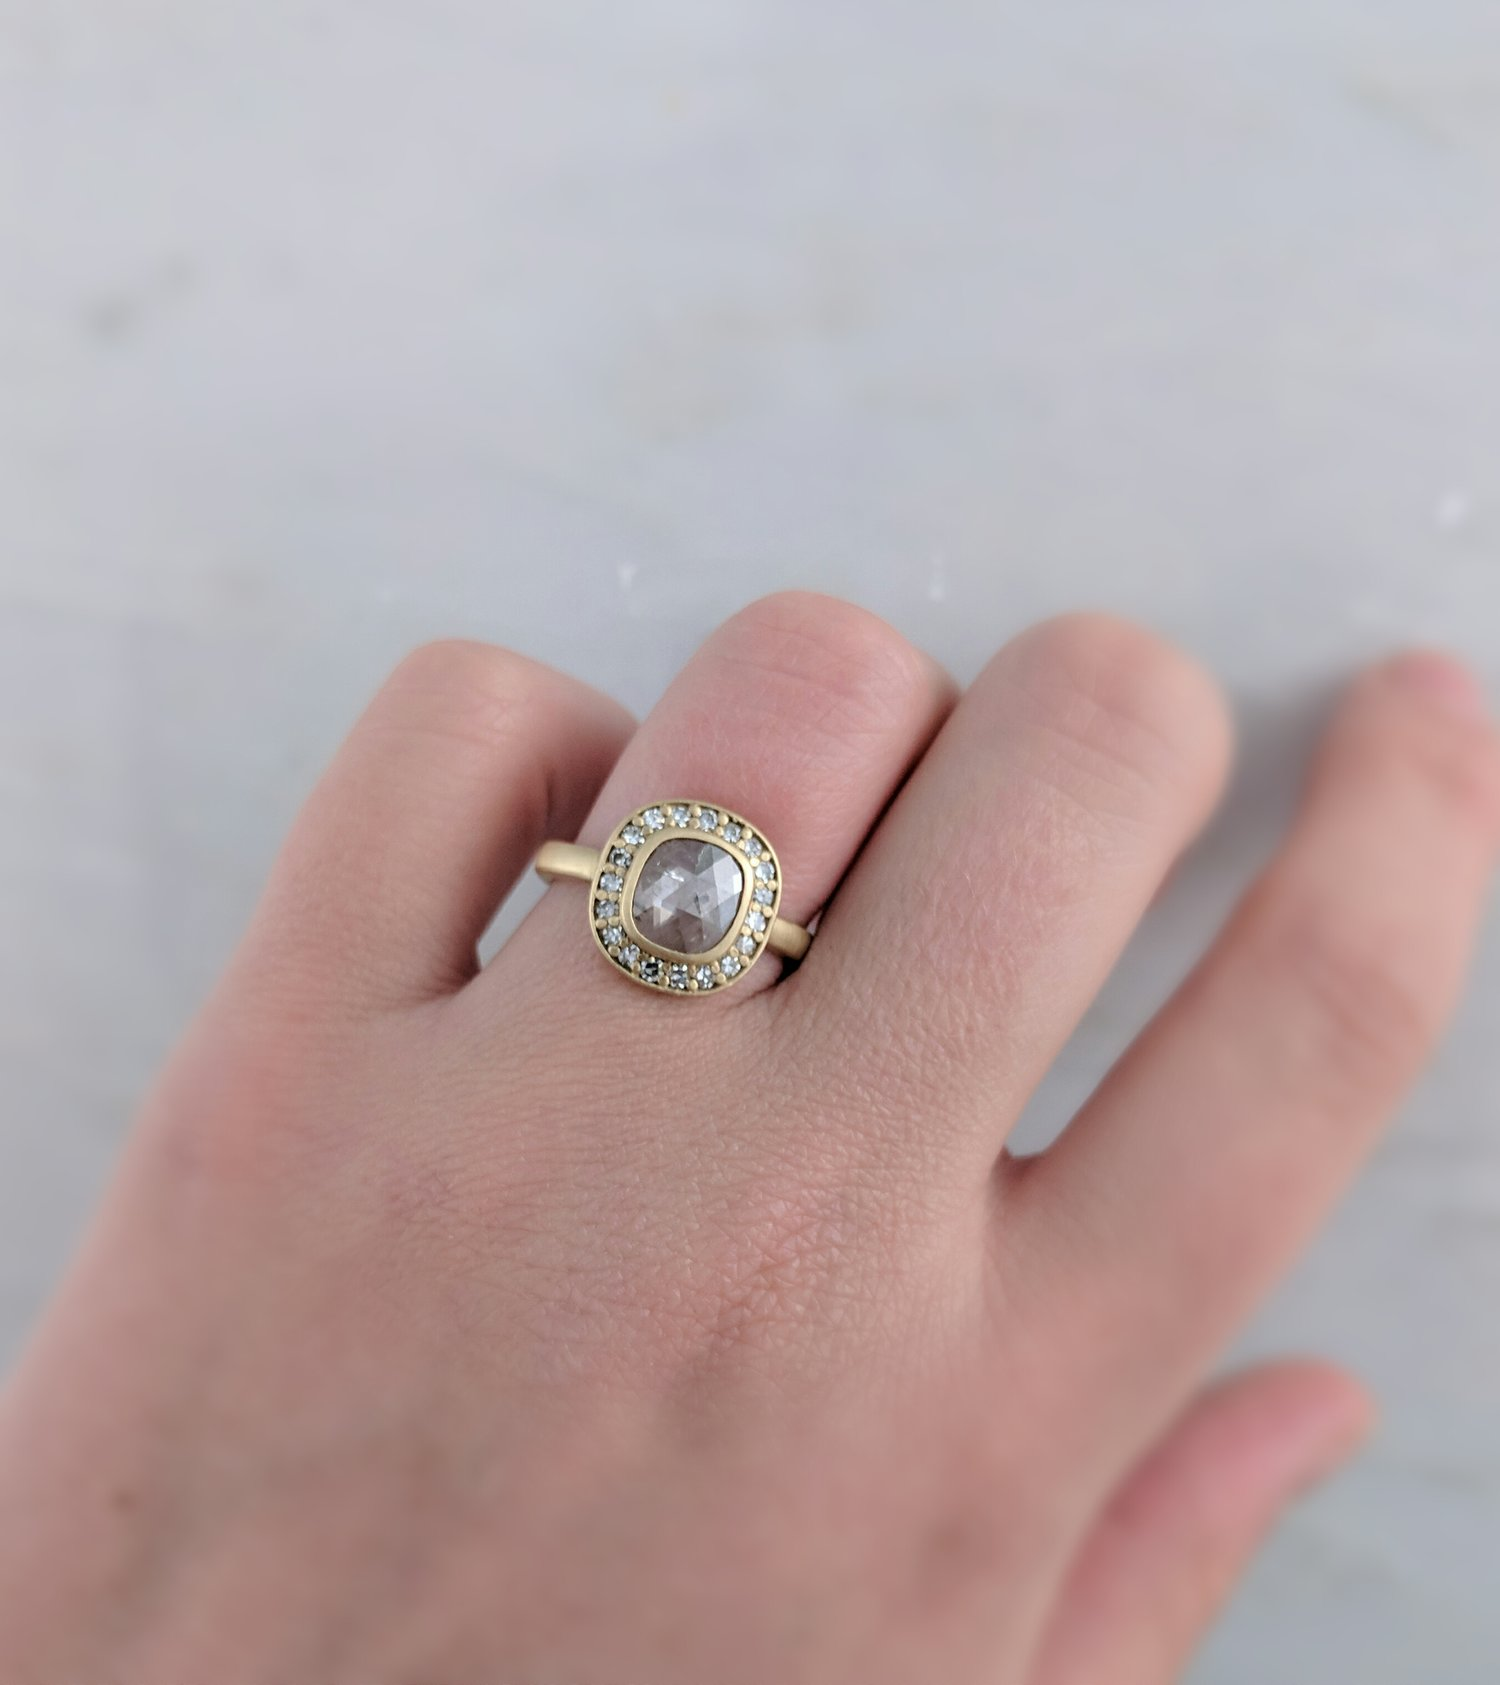 Translucent Rose Cut Diamond Halo Ring in 14K Yellow Gold — D O O Z I E